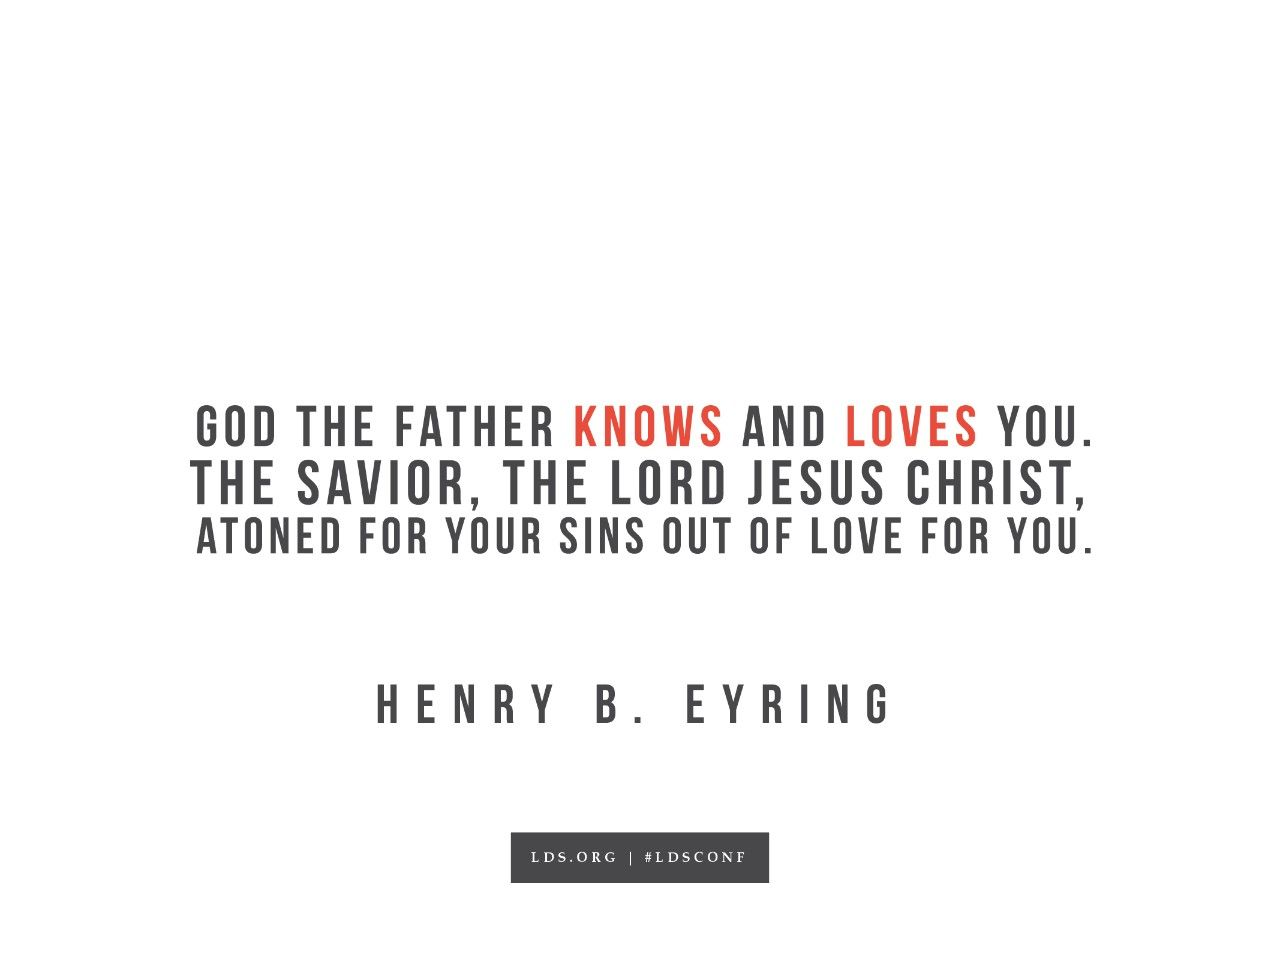 """""""God the Father knows and loves you. The Savior, the Lord Jesus Christ, atoned for your sins out of love for you.""""—Henry B. Eyring, """"Gratitude on the Sabbath Day"""""""